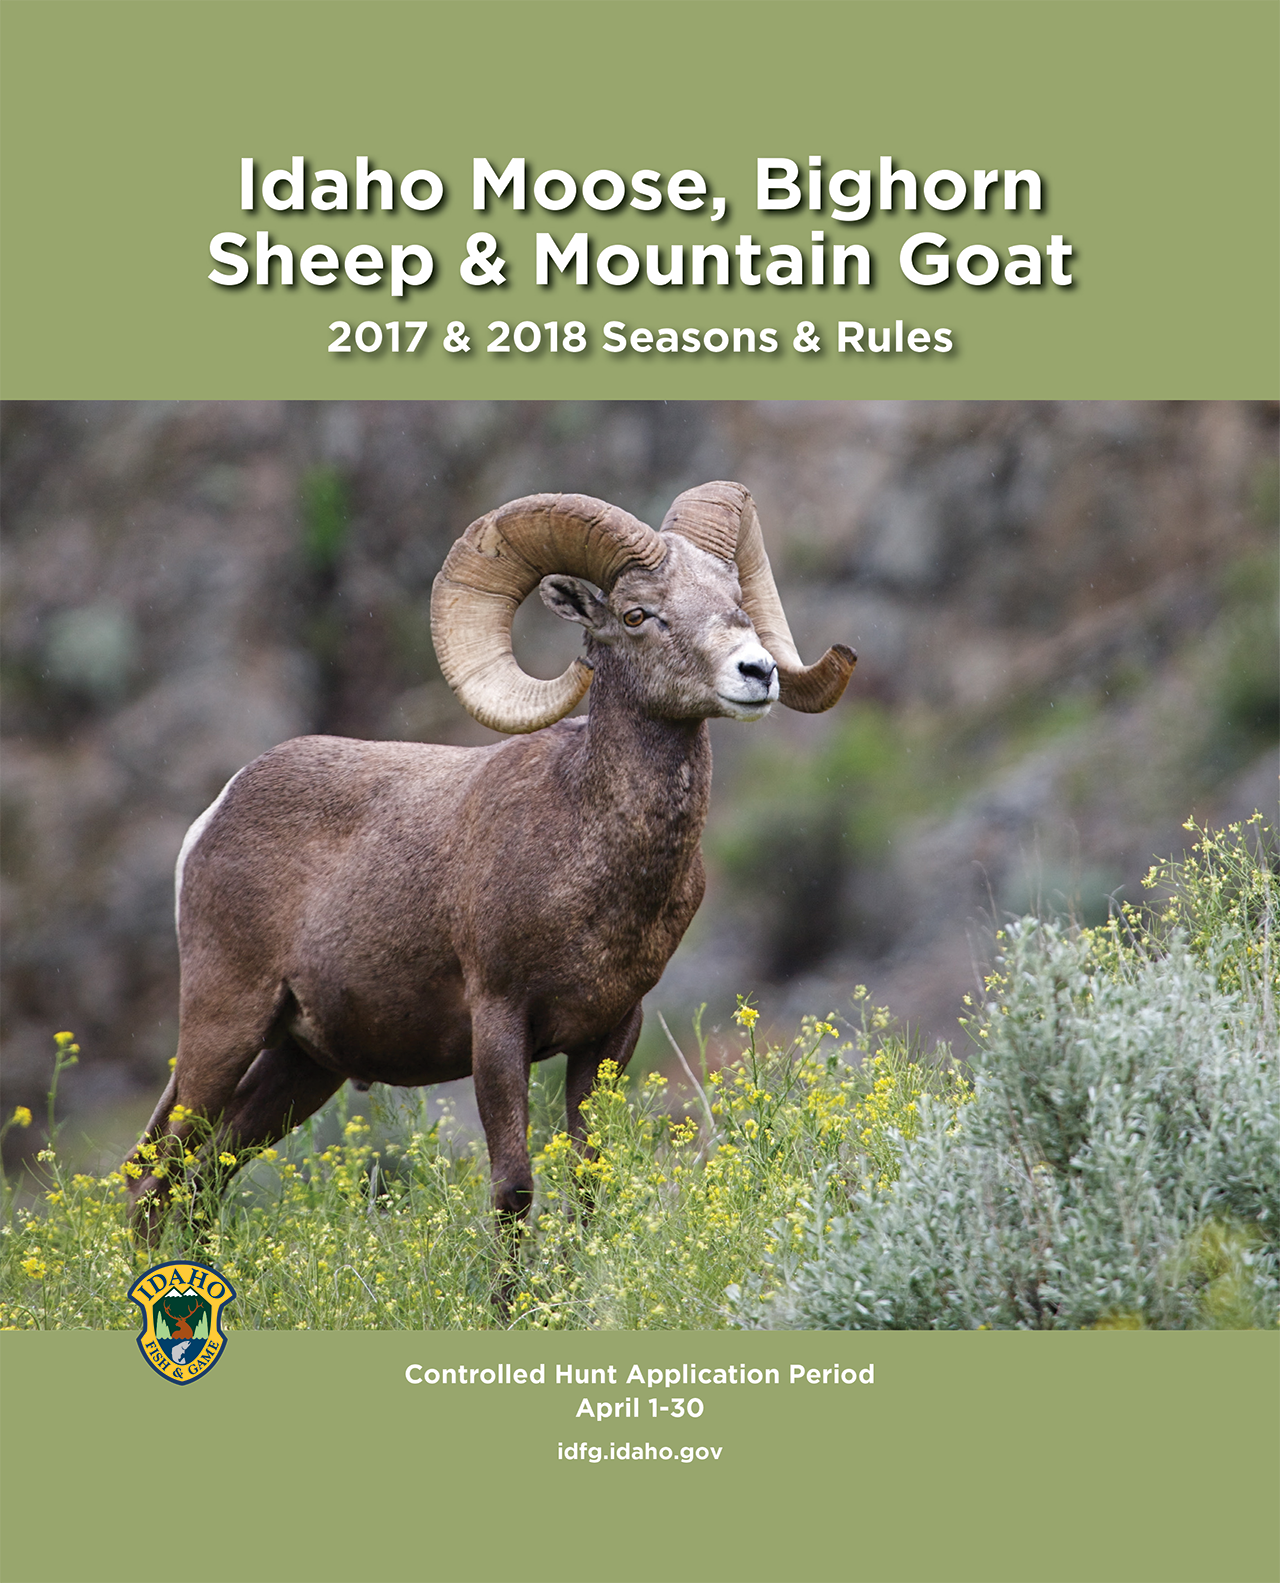 Seasons and rules booklet for moose, bighorn sheep and mountain goat